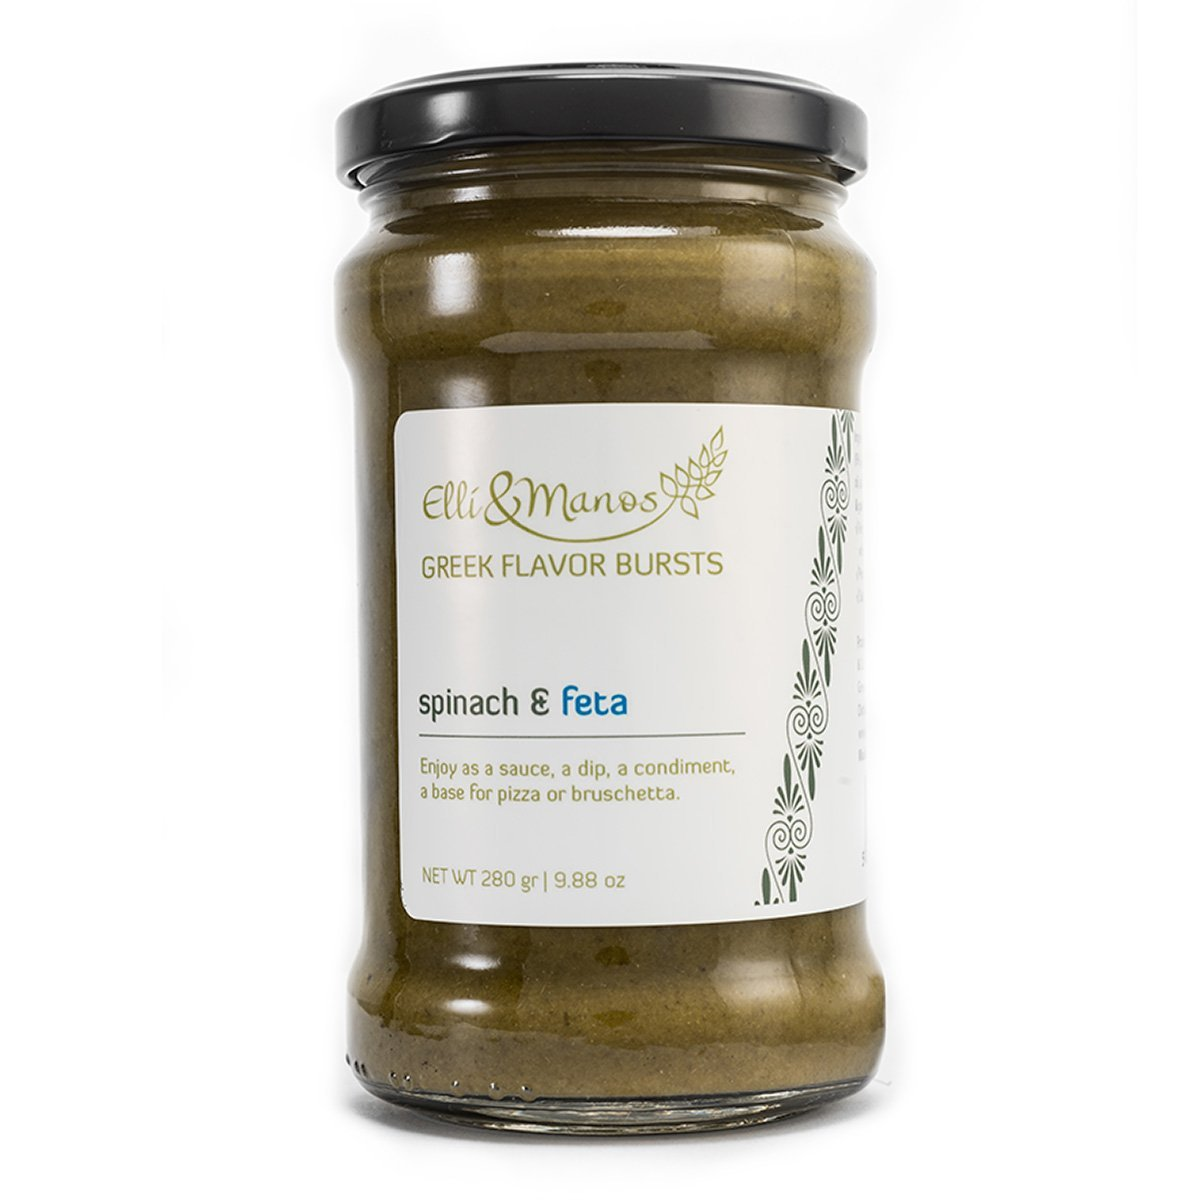 Elli & Manos Greek Flavor Bursts - Spinach & Feta - 280gr/9.88oz - highly concentrated spread/veggie dip by Elli & Manos